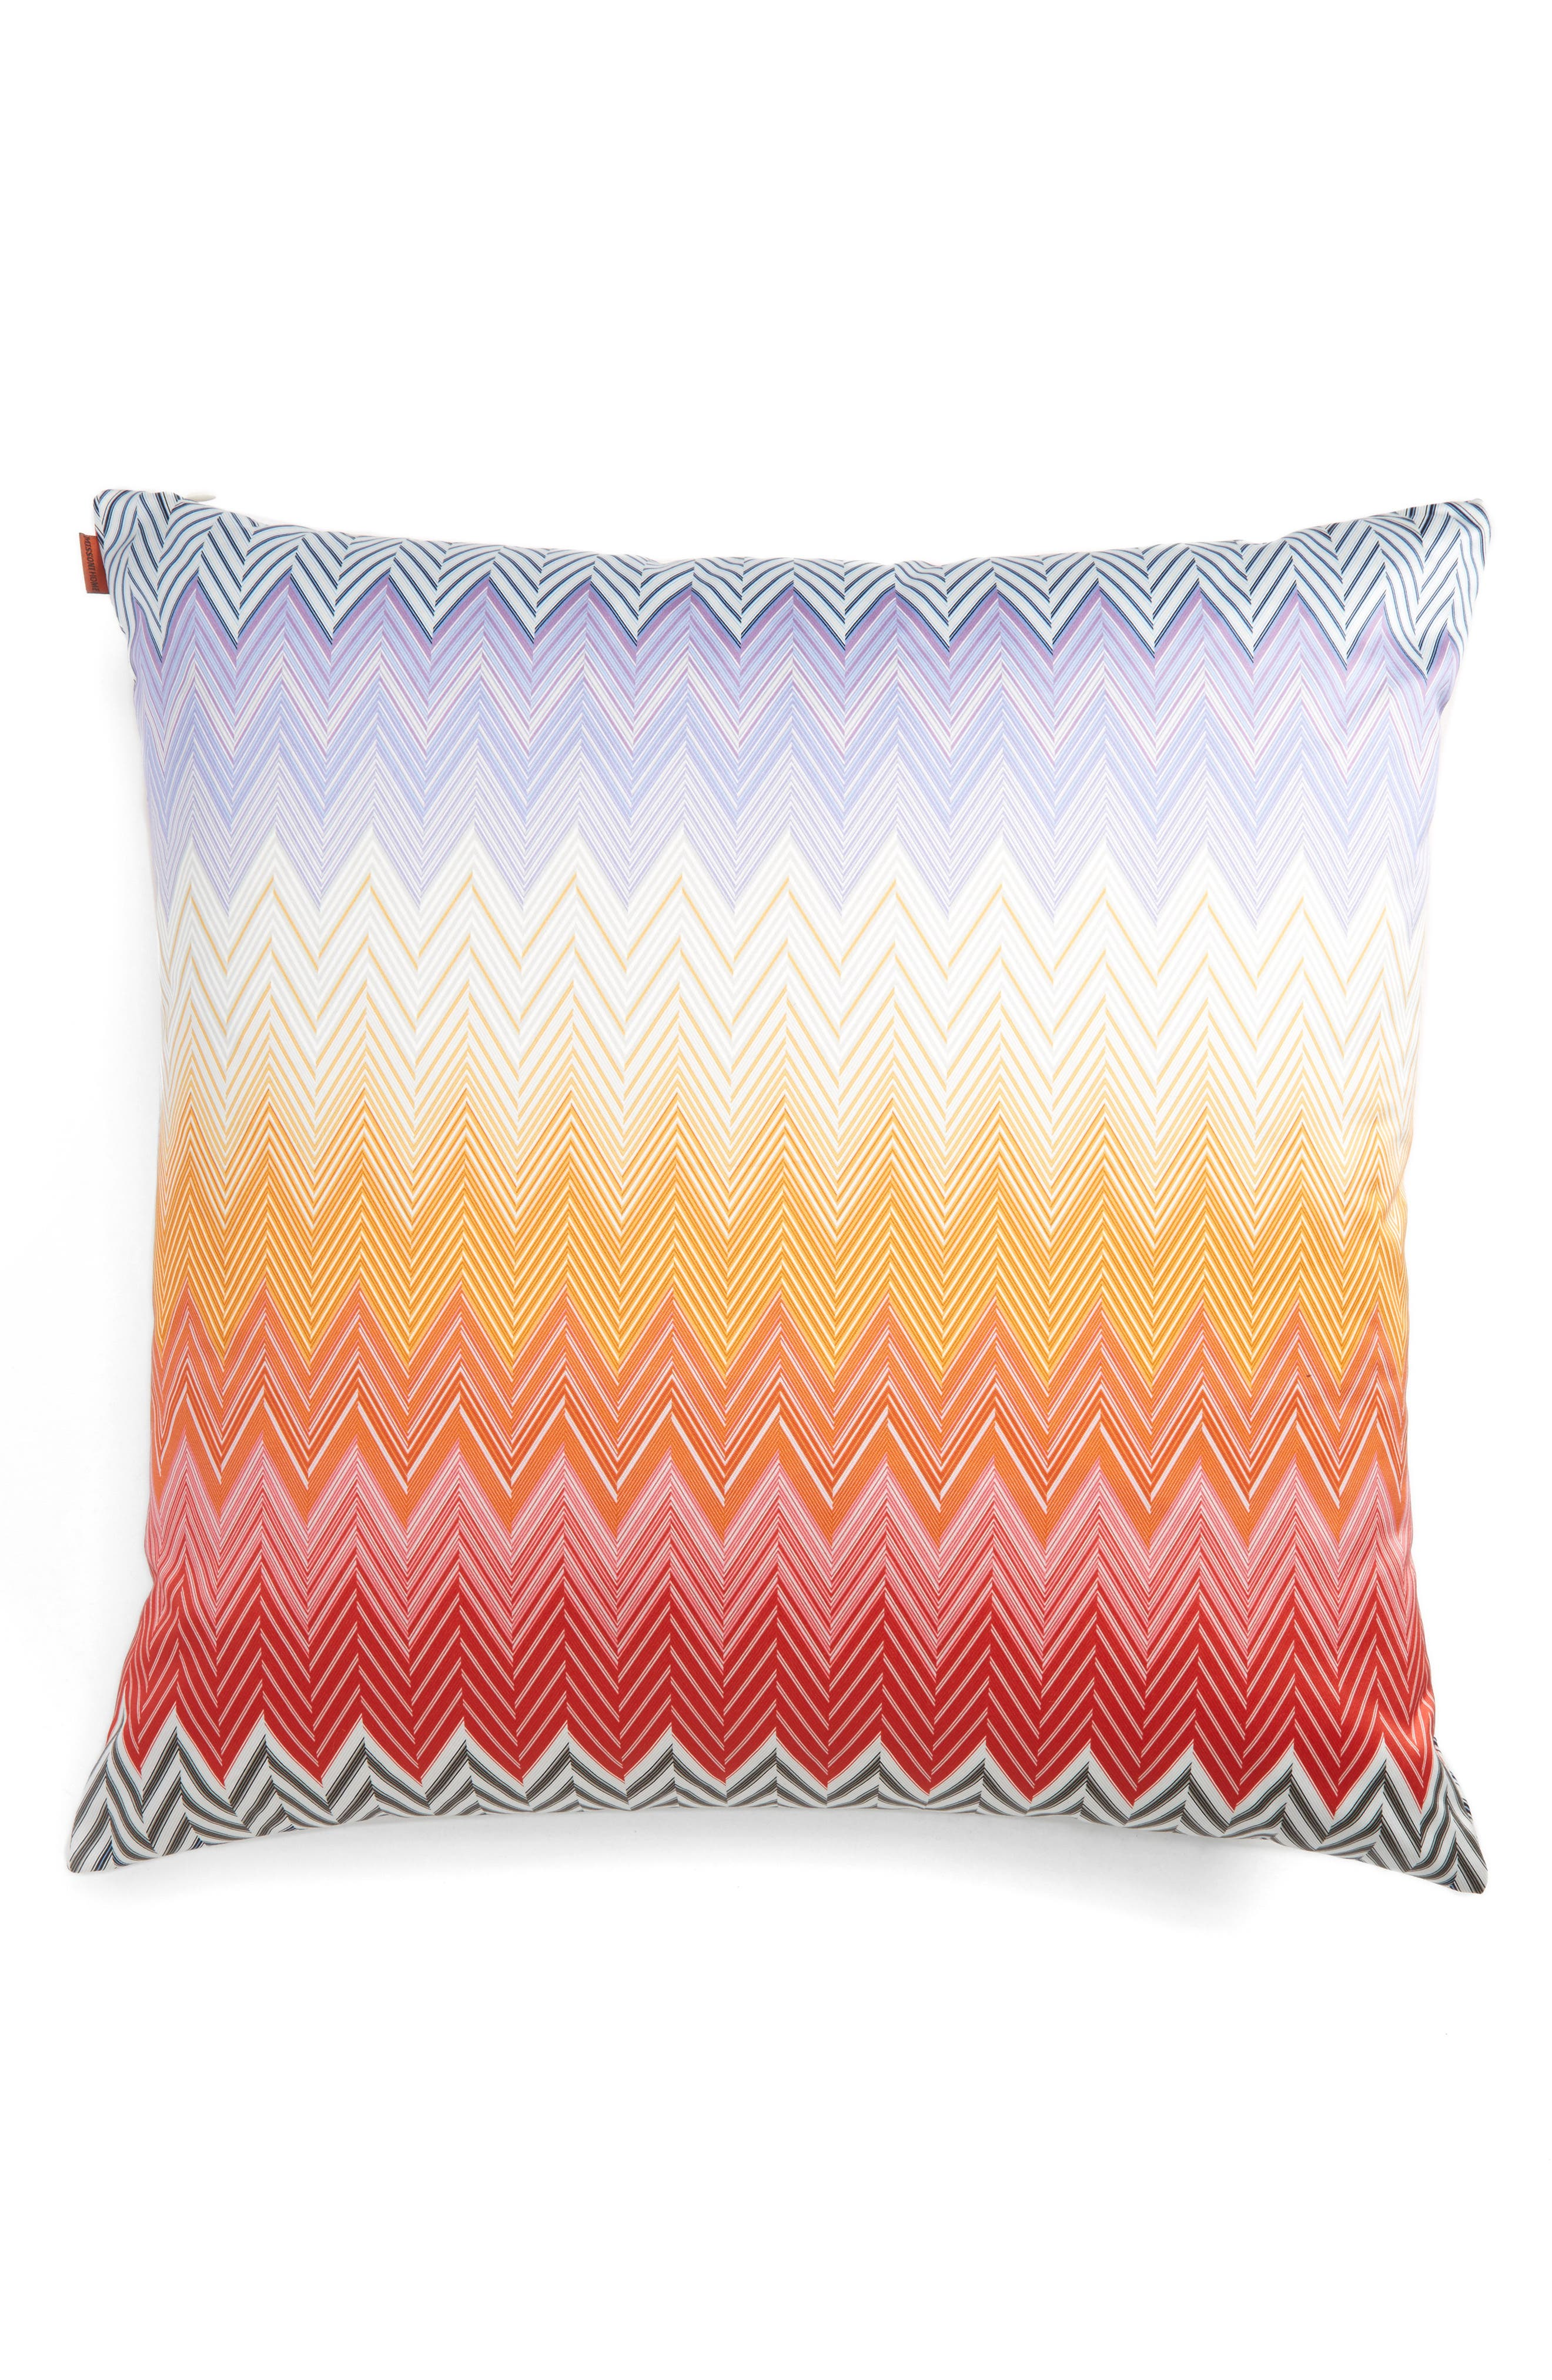 Sabaudia Accent Pillow,                             Main thumbnail 1, color,                             Multi Red